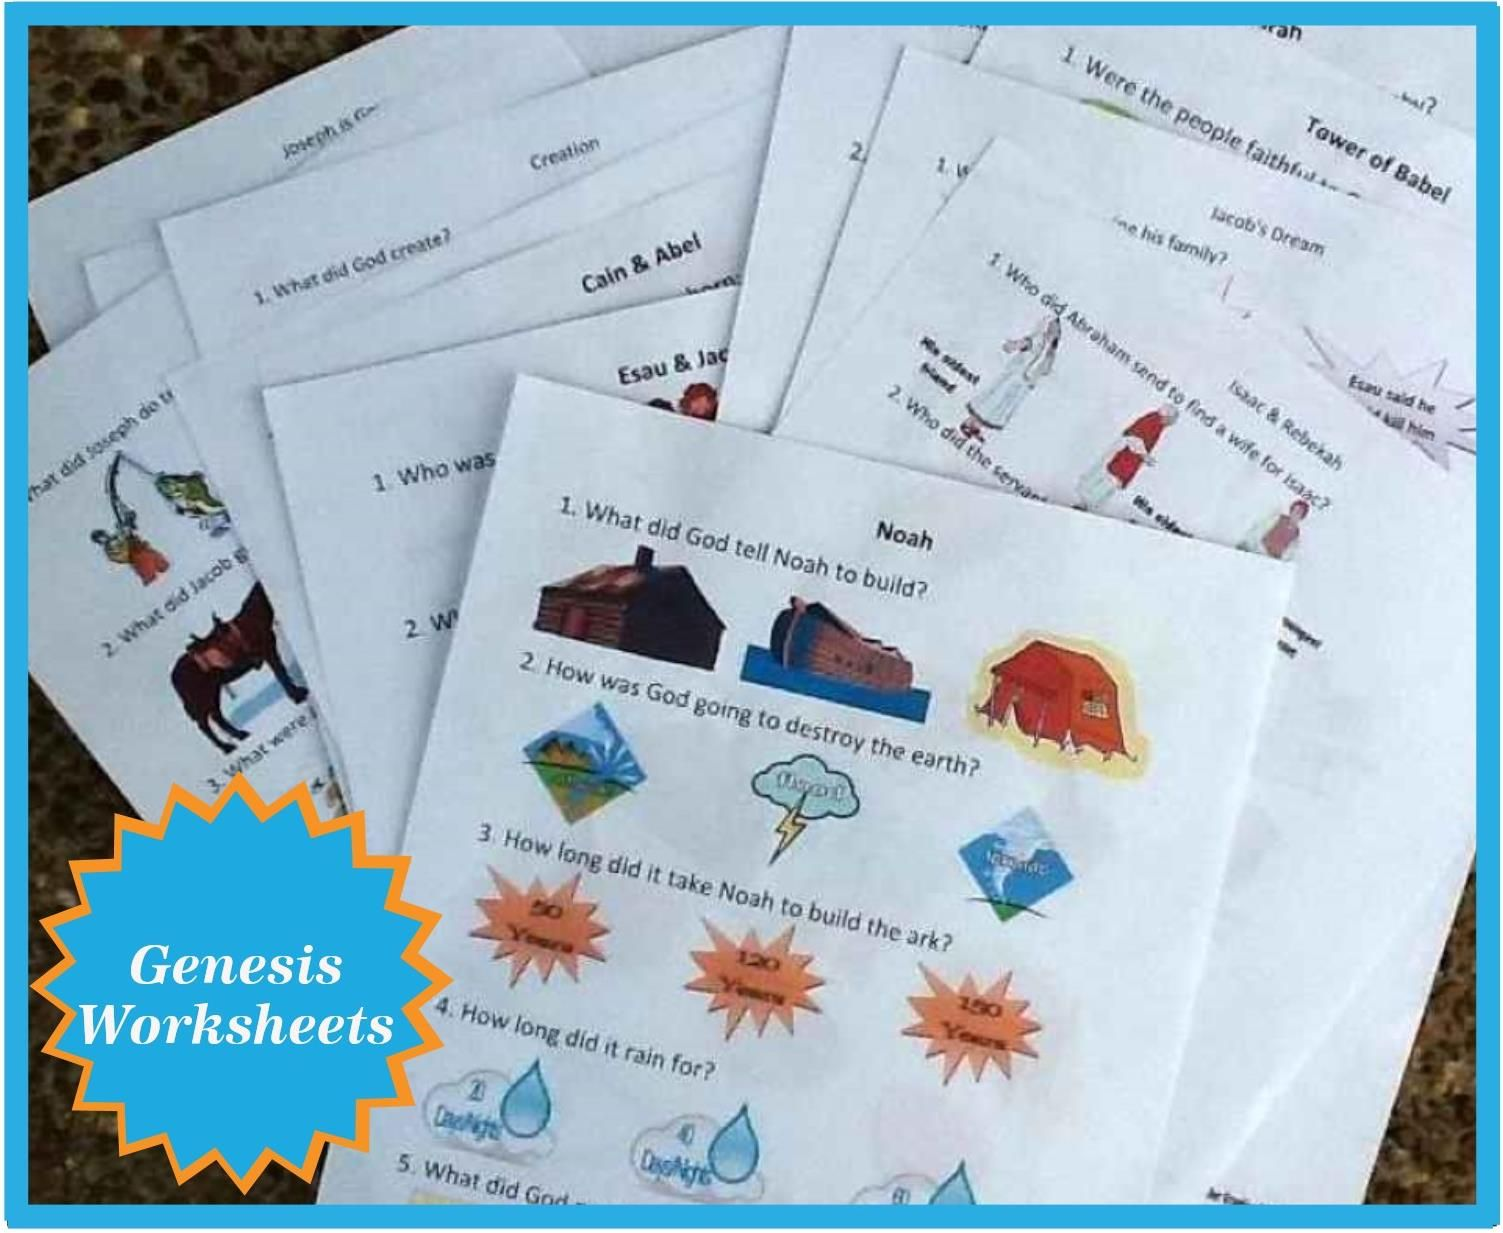 Fun Worksheets For Adults : Here are the worksheets for genesis all in one place! you will also